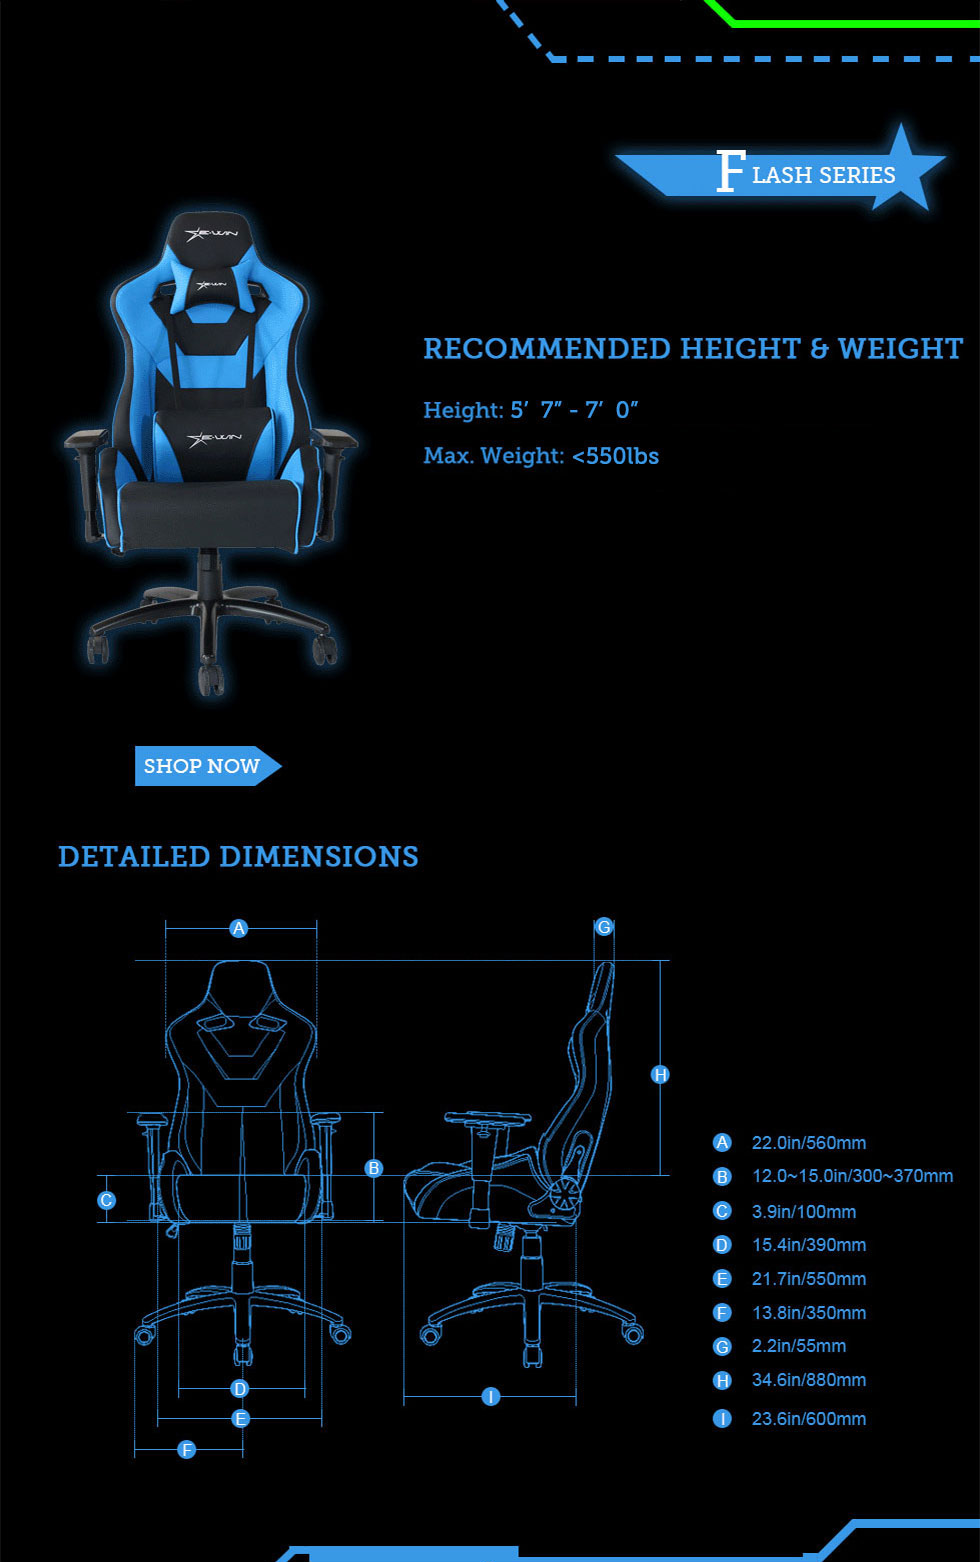 Dimensions of E-WIN Flash Normal Size Gaming Chairs